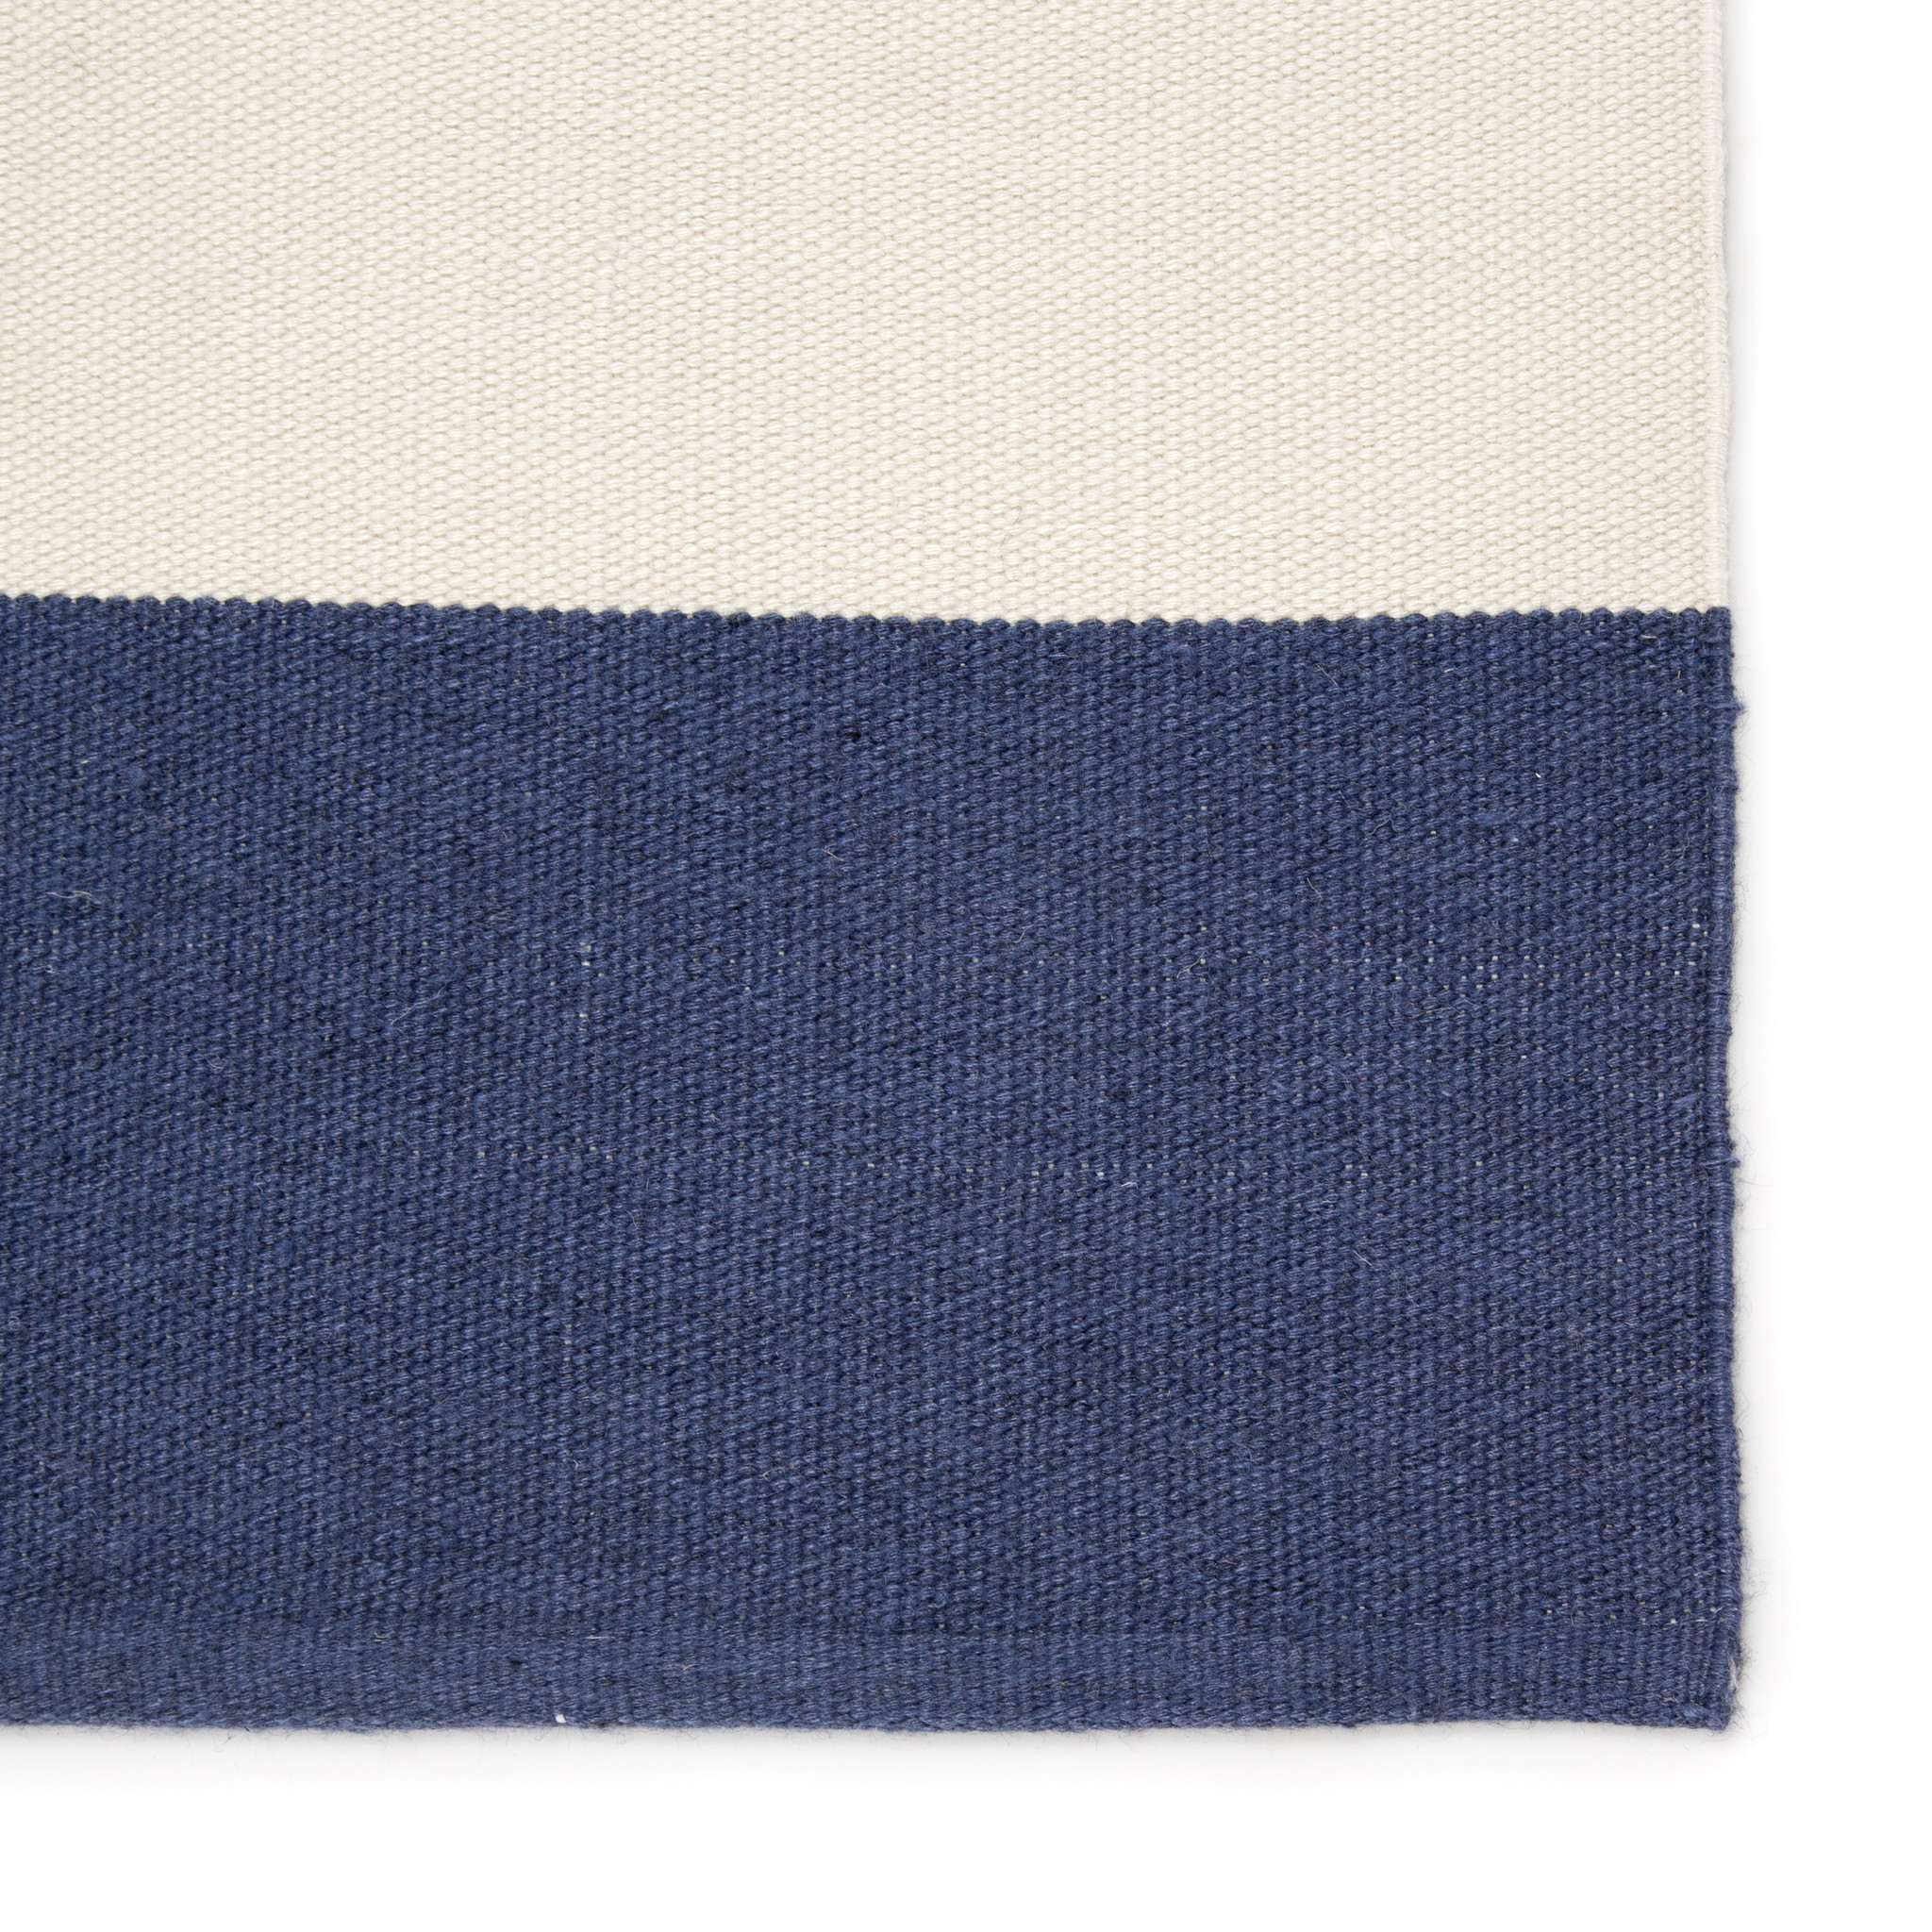 Picture of: Remora Navy Blue Striped Rug Caron S Beach House